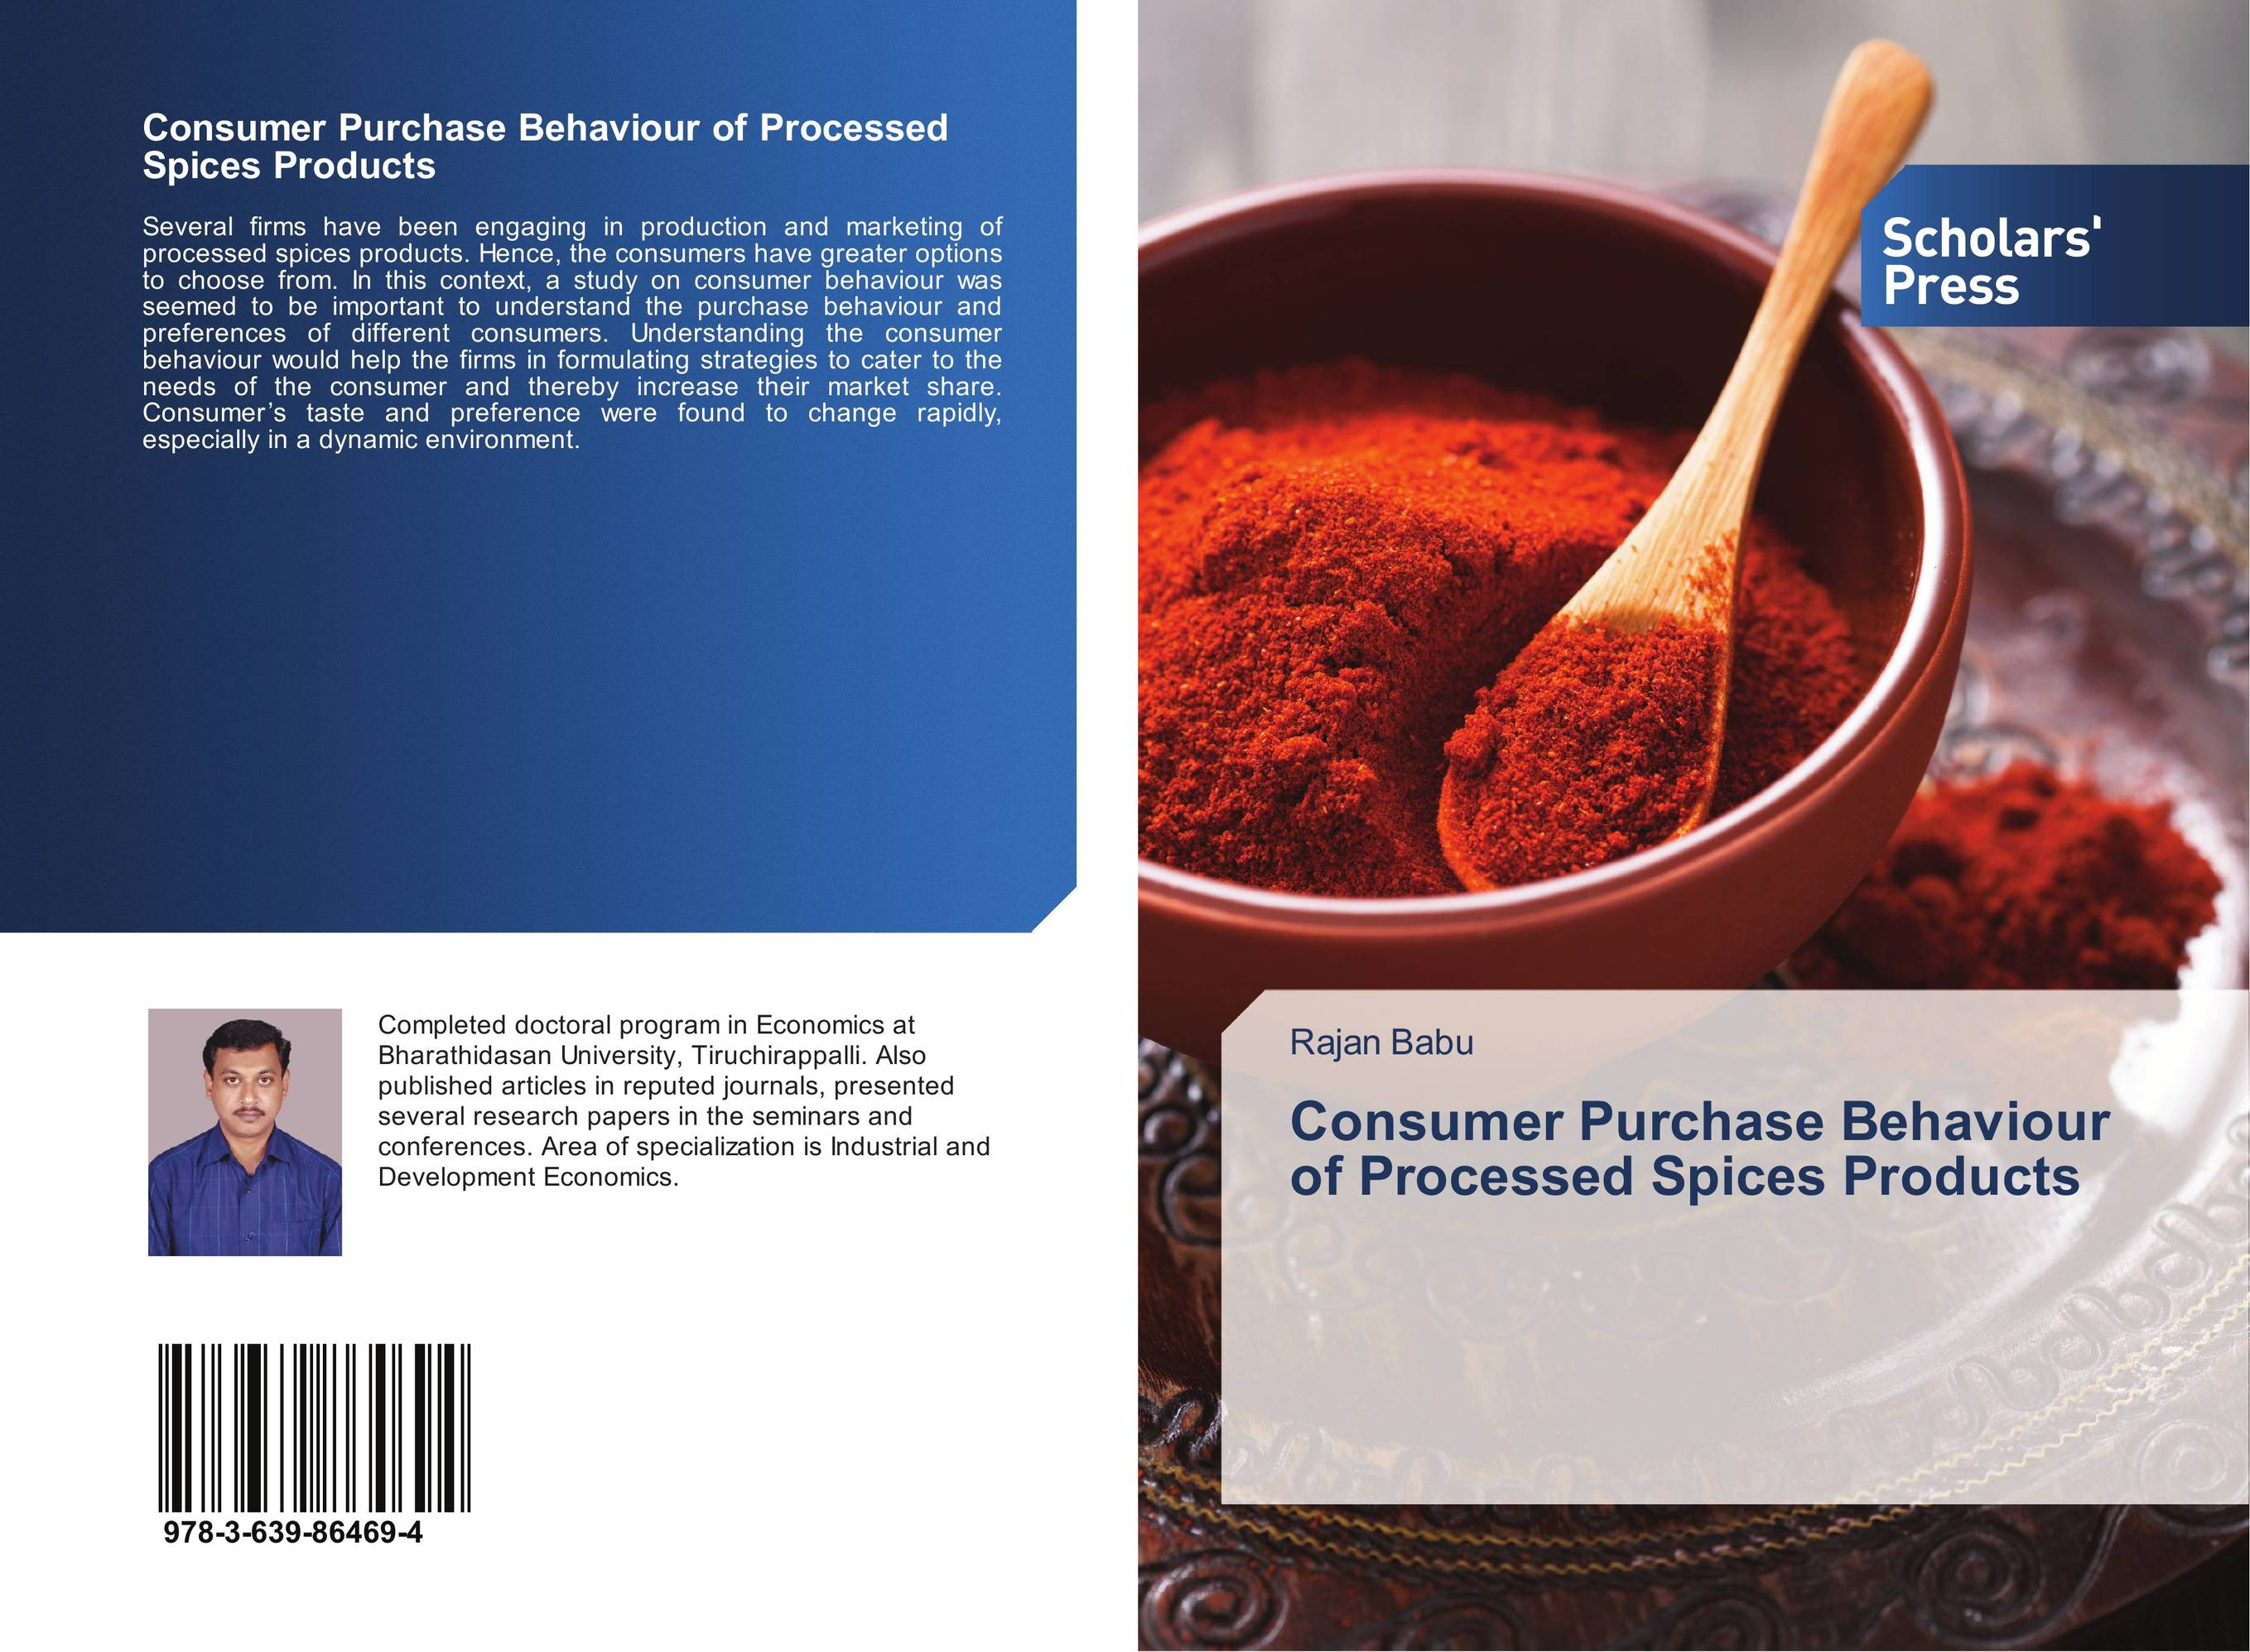 Consumer Purchase Behaviour of Processed Spices Products